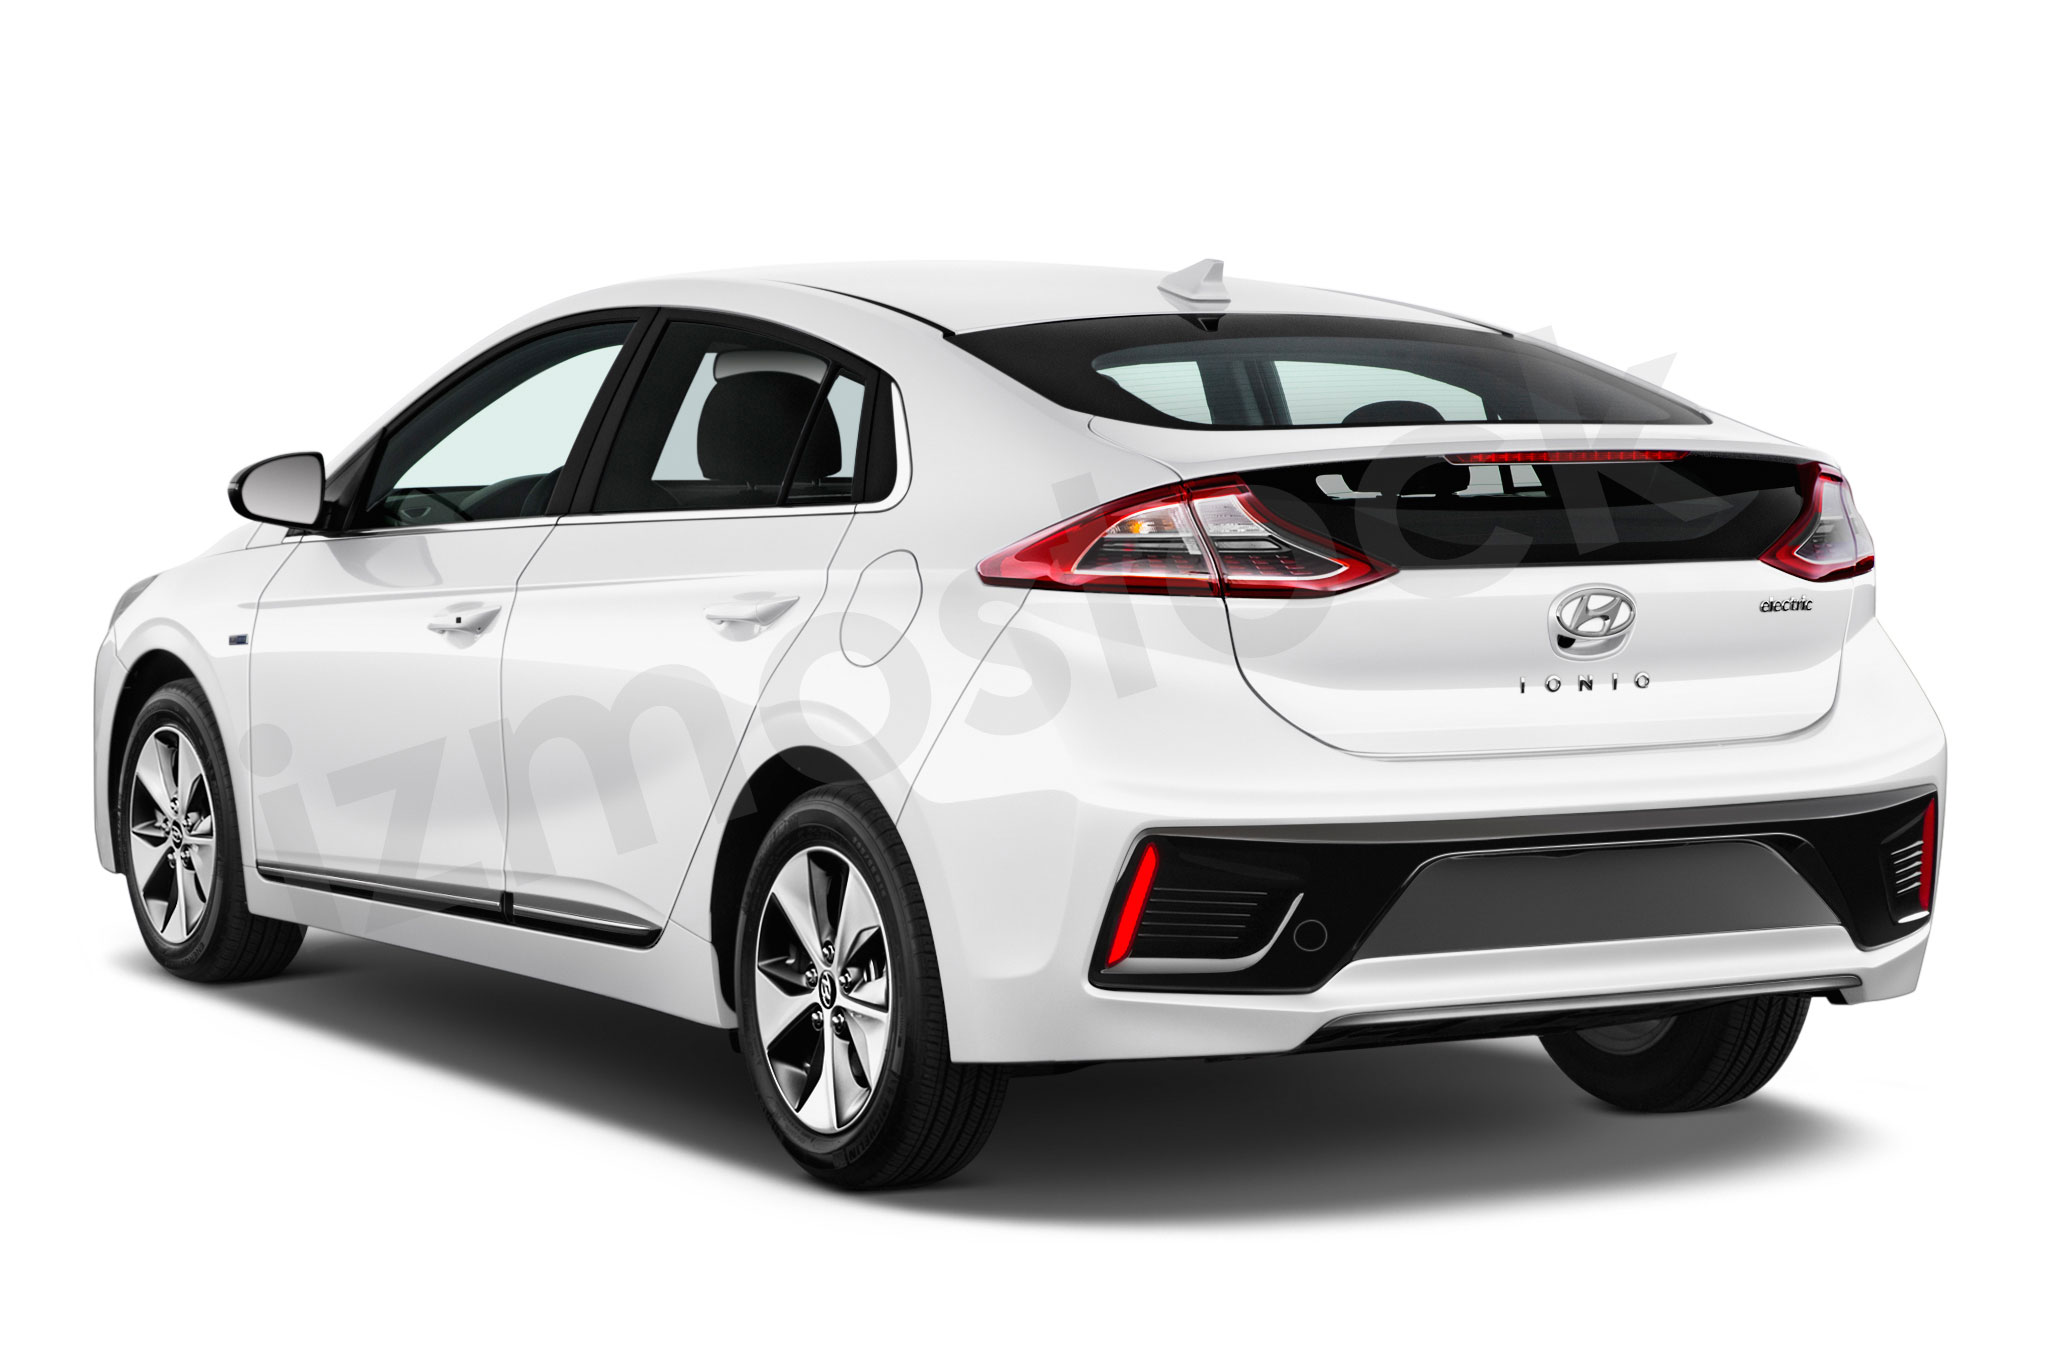 hyundai ioniq 2017 images review price interior video and specs it s electrifying. Black Bedroom Furniture Sets. Home Design Ideas